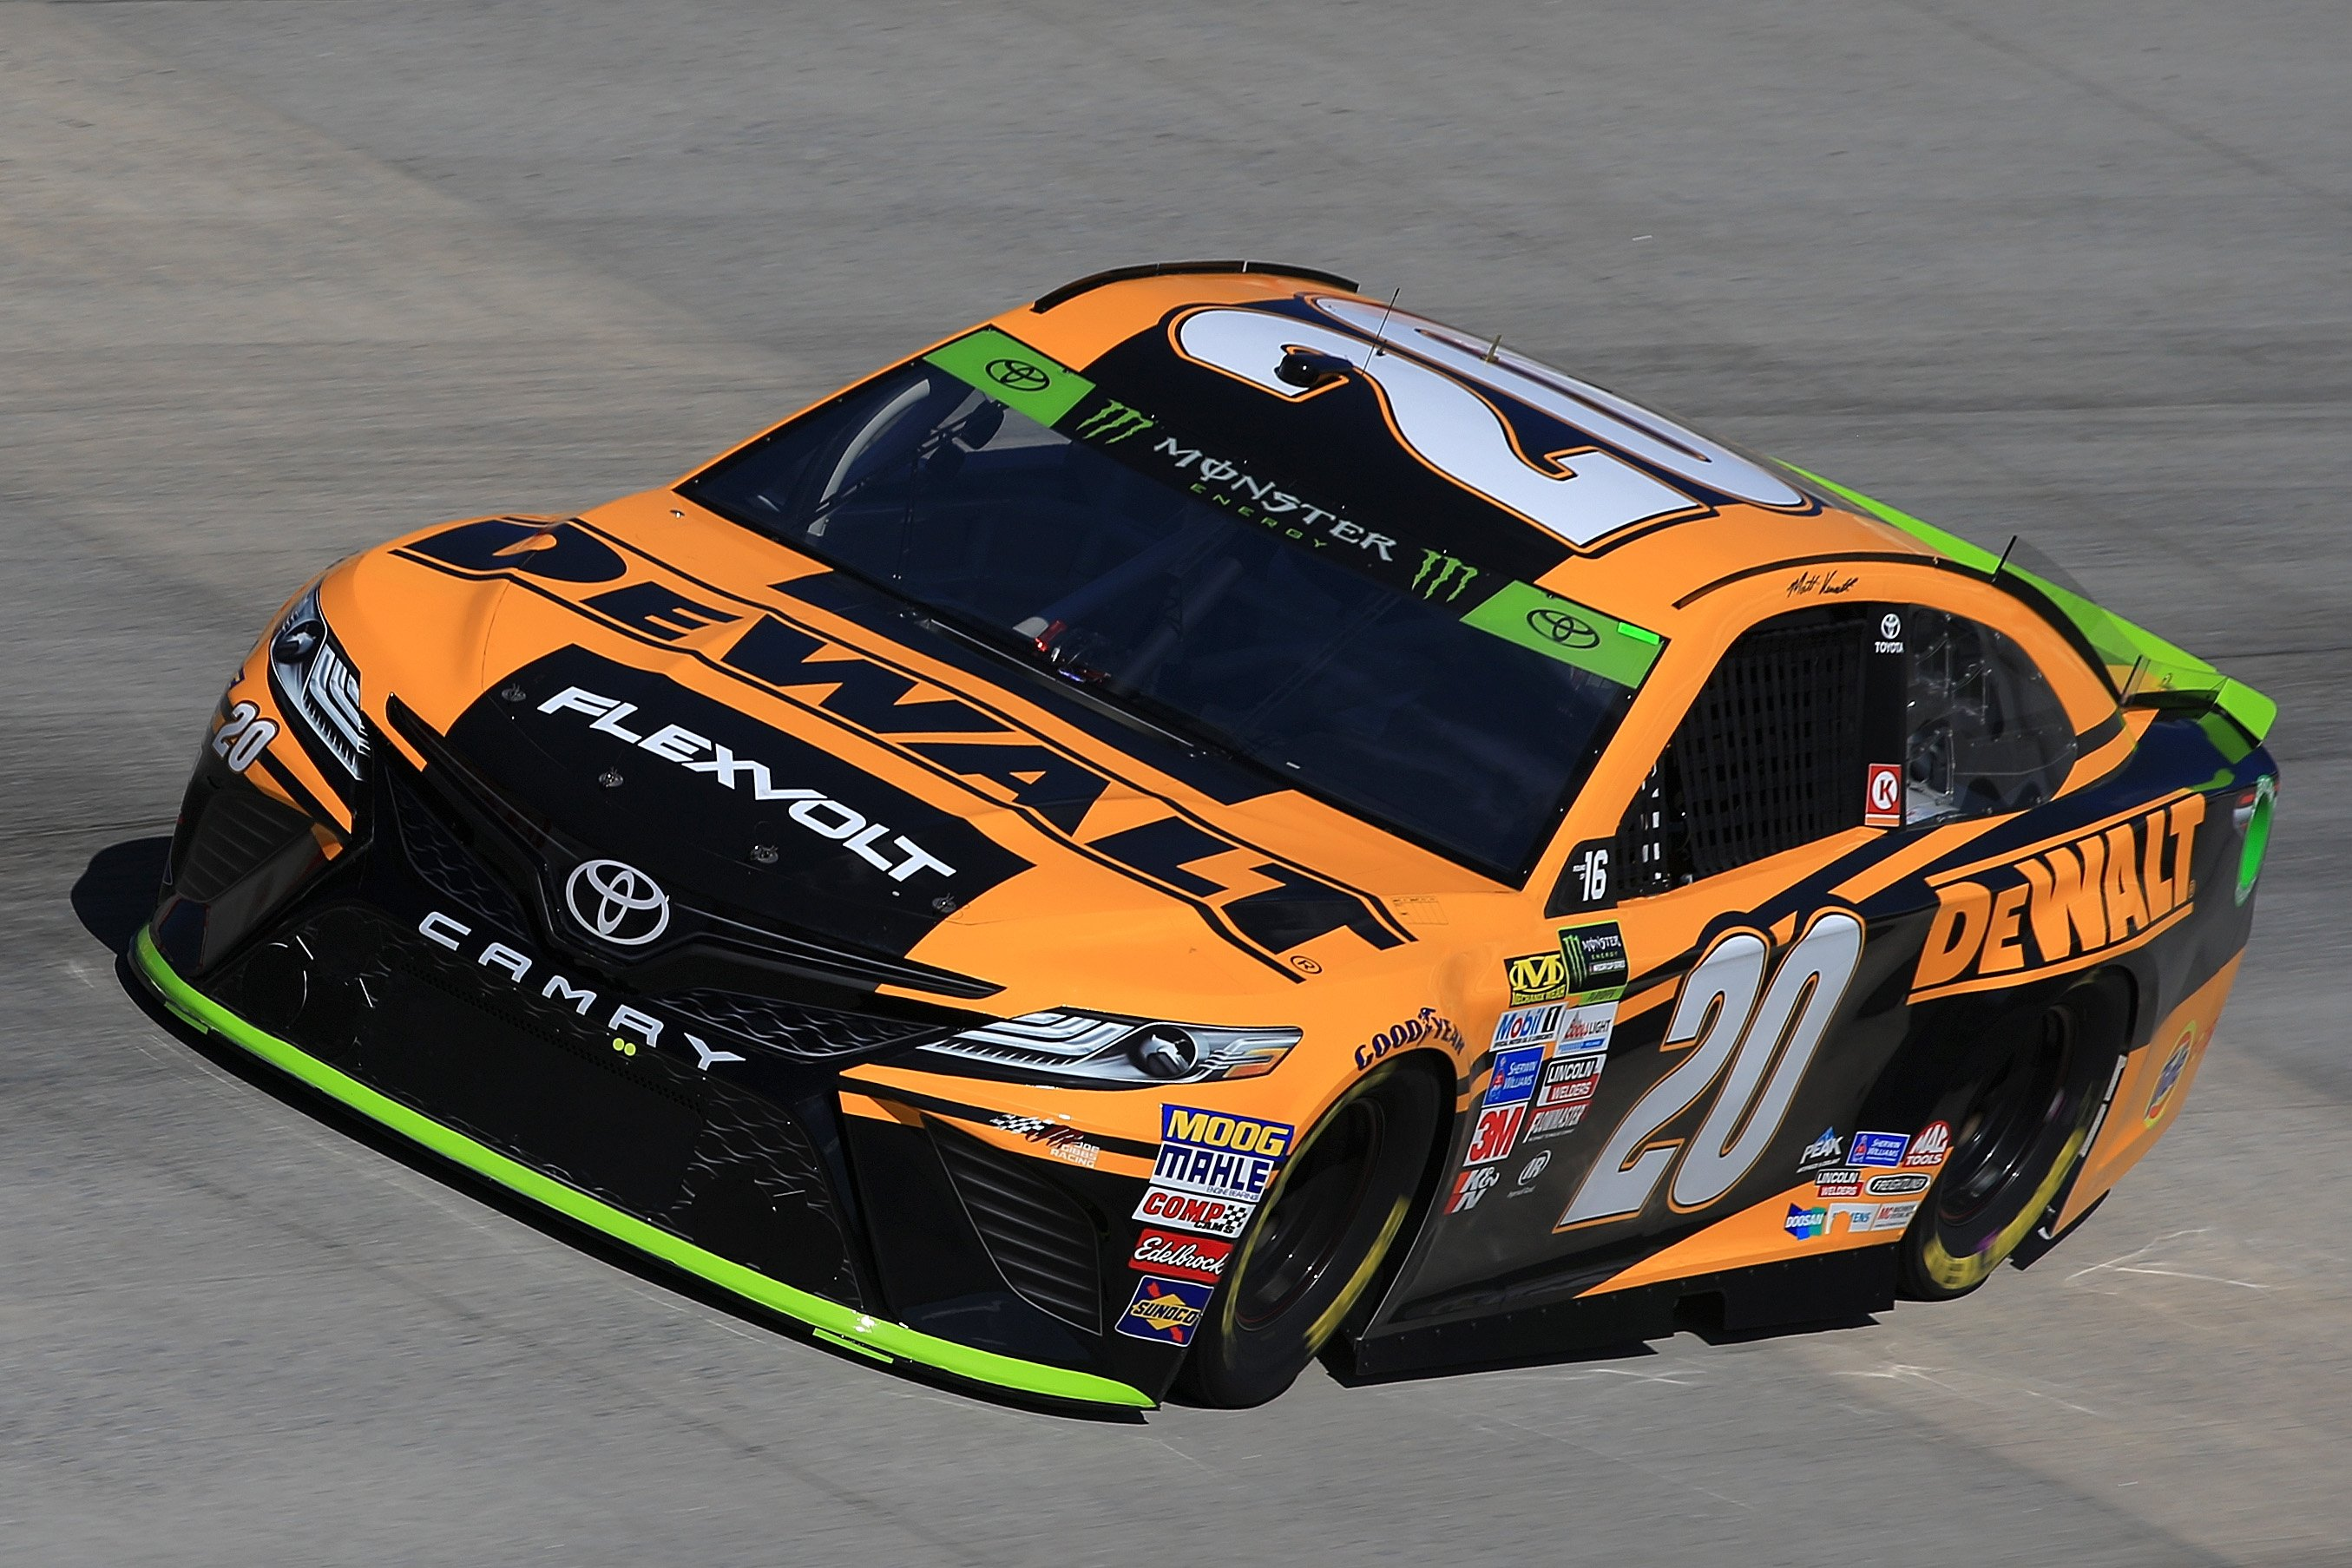 2018 NASCAR Cup Series rules